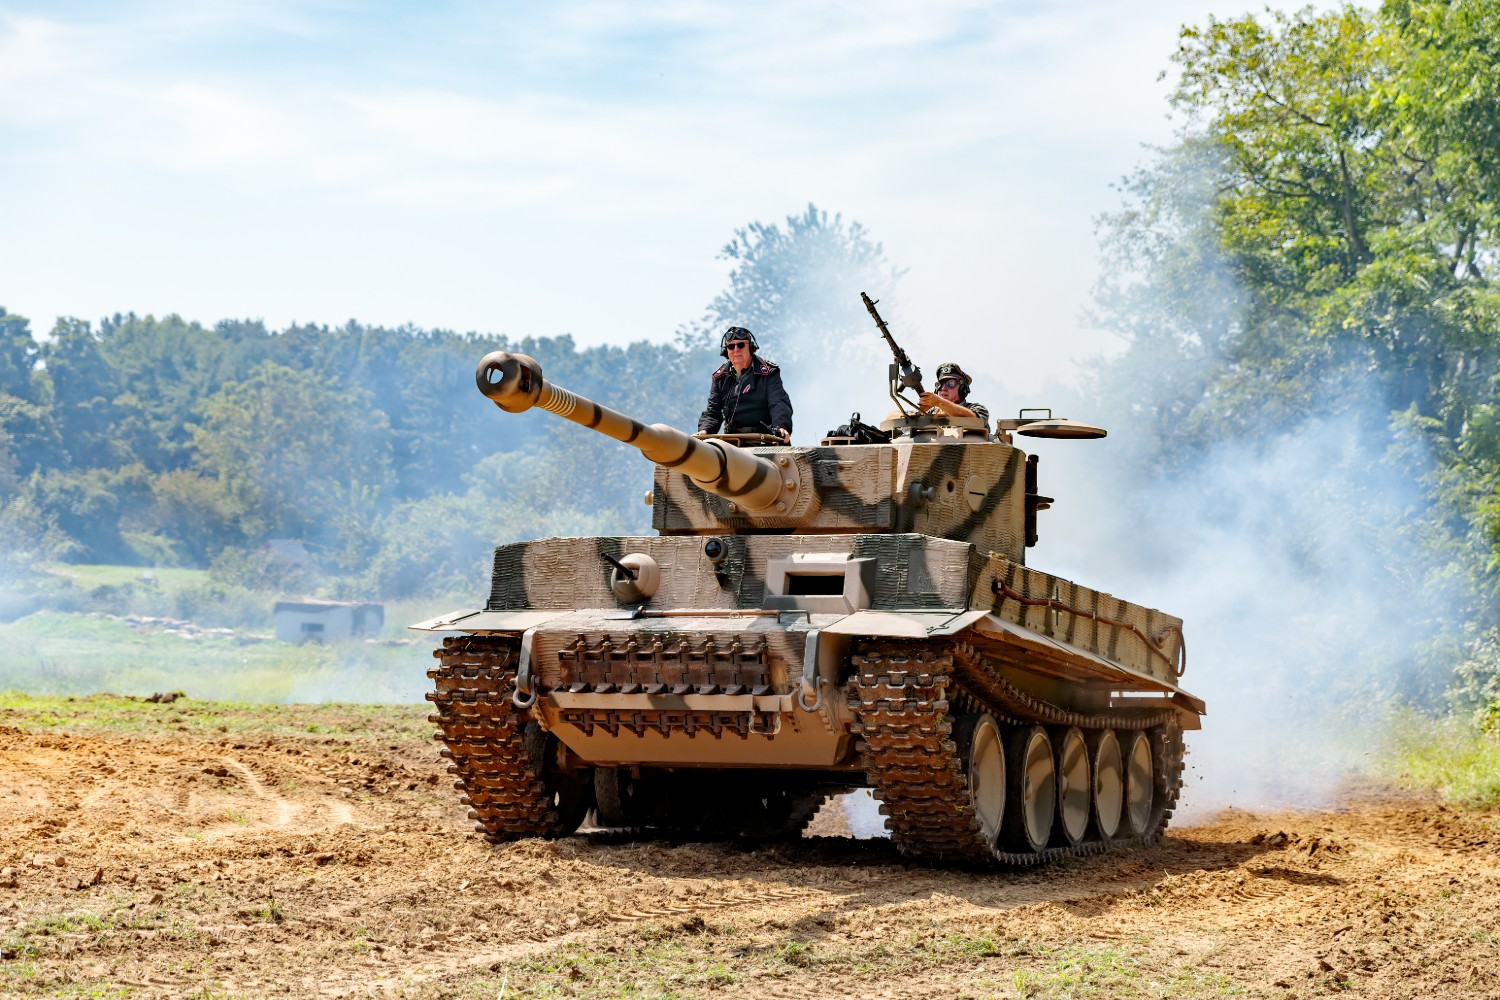 Operator in a Tiger Tank Replica